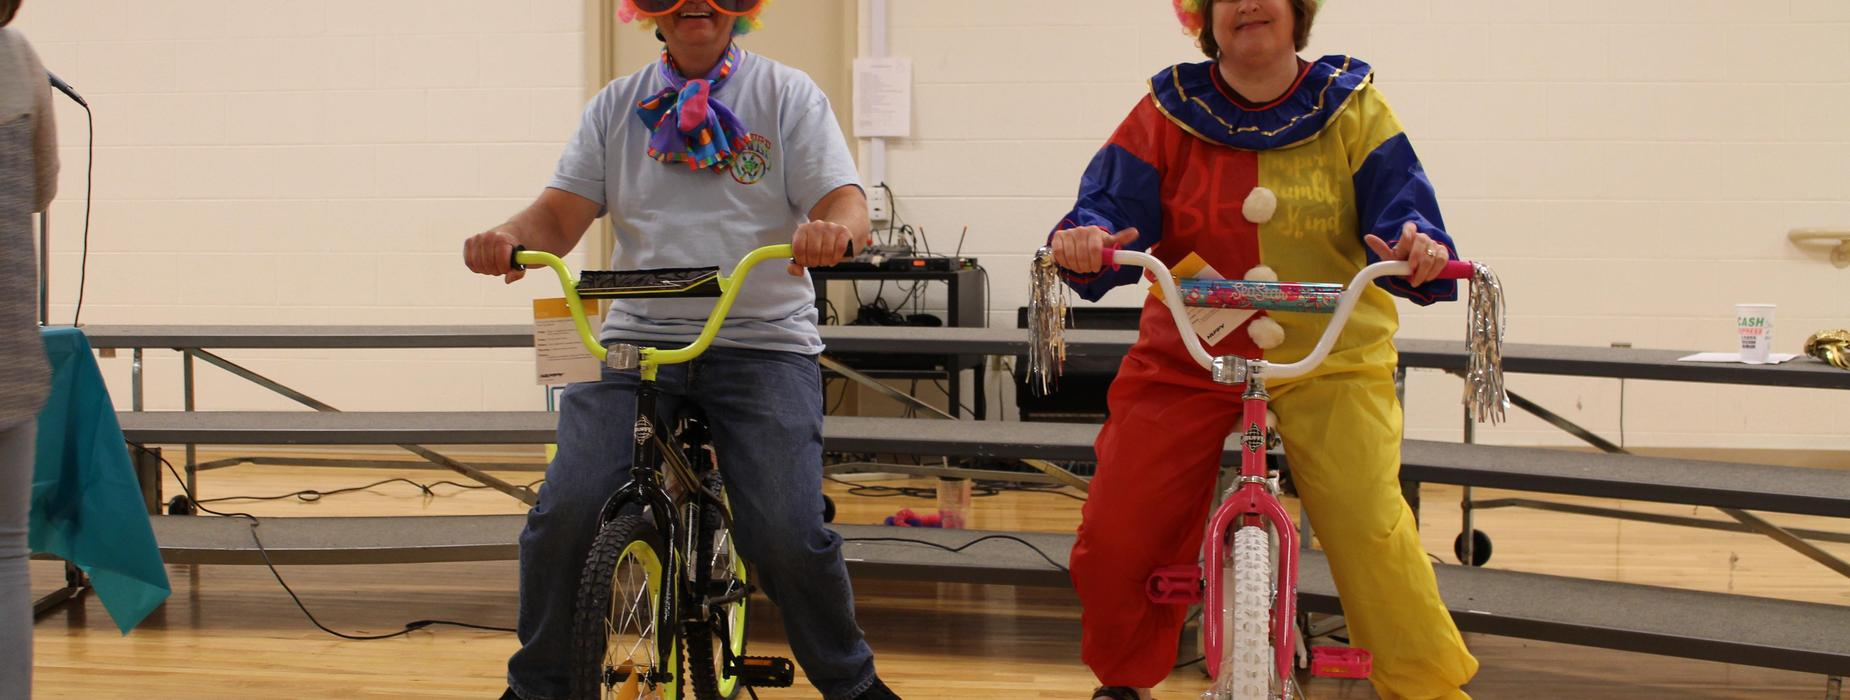 Picture of Principal Robert Hooper and Assistant Principal Laura Jones dressed as clowns sitting on AR bikes.